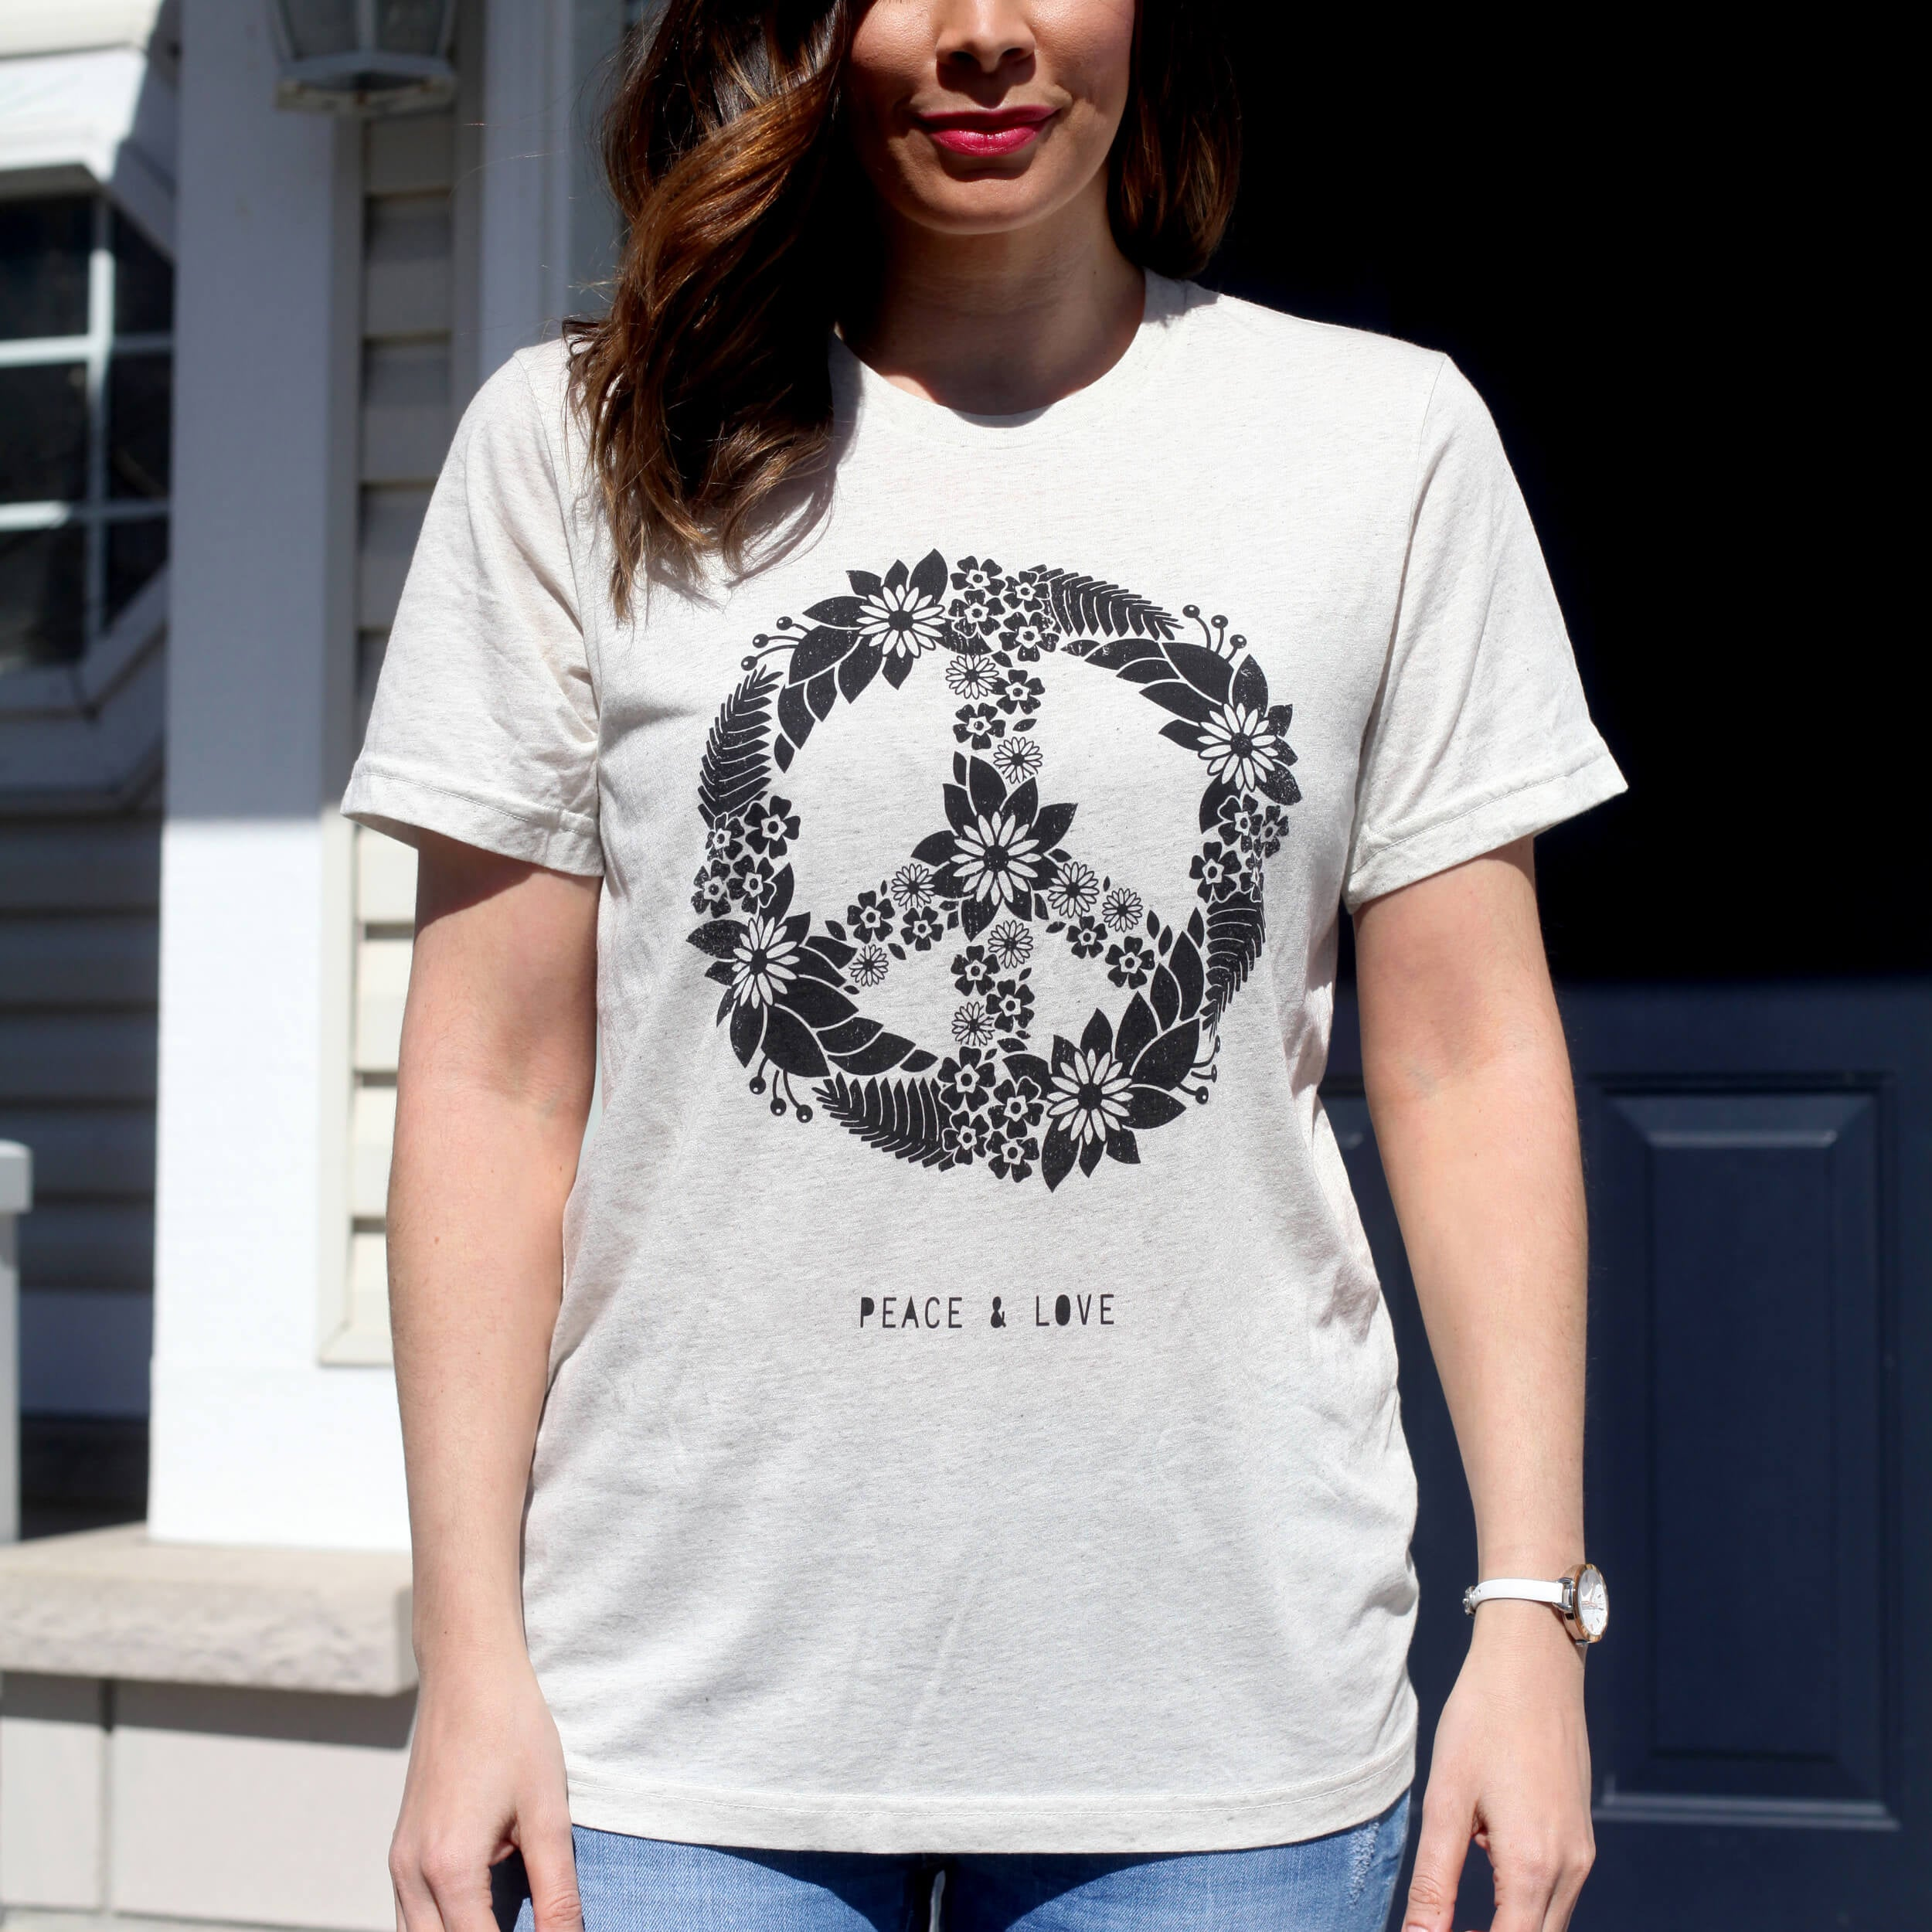 Peace and Love Tee - Vision City Design Studio